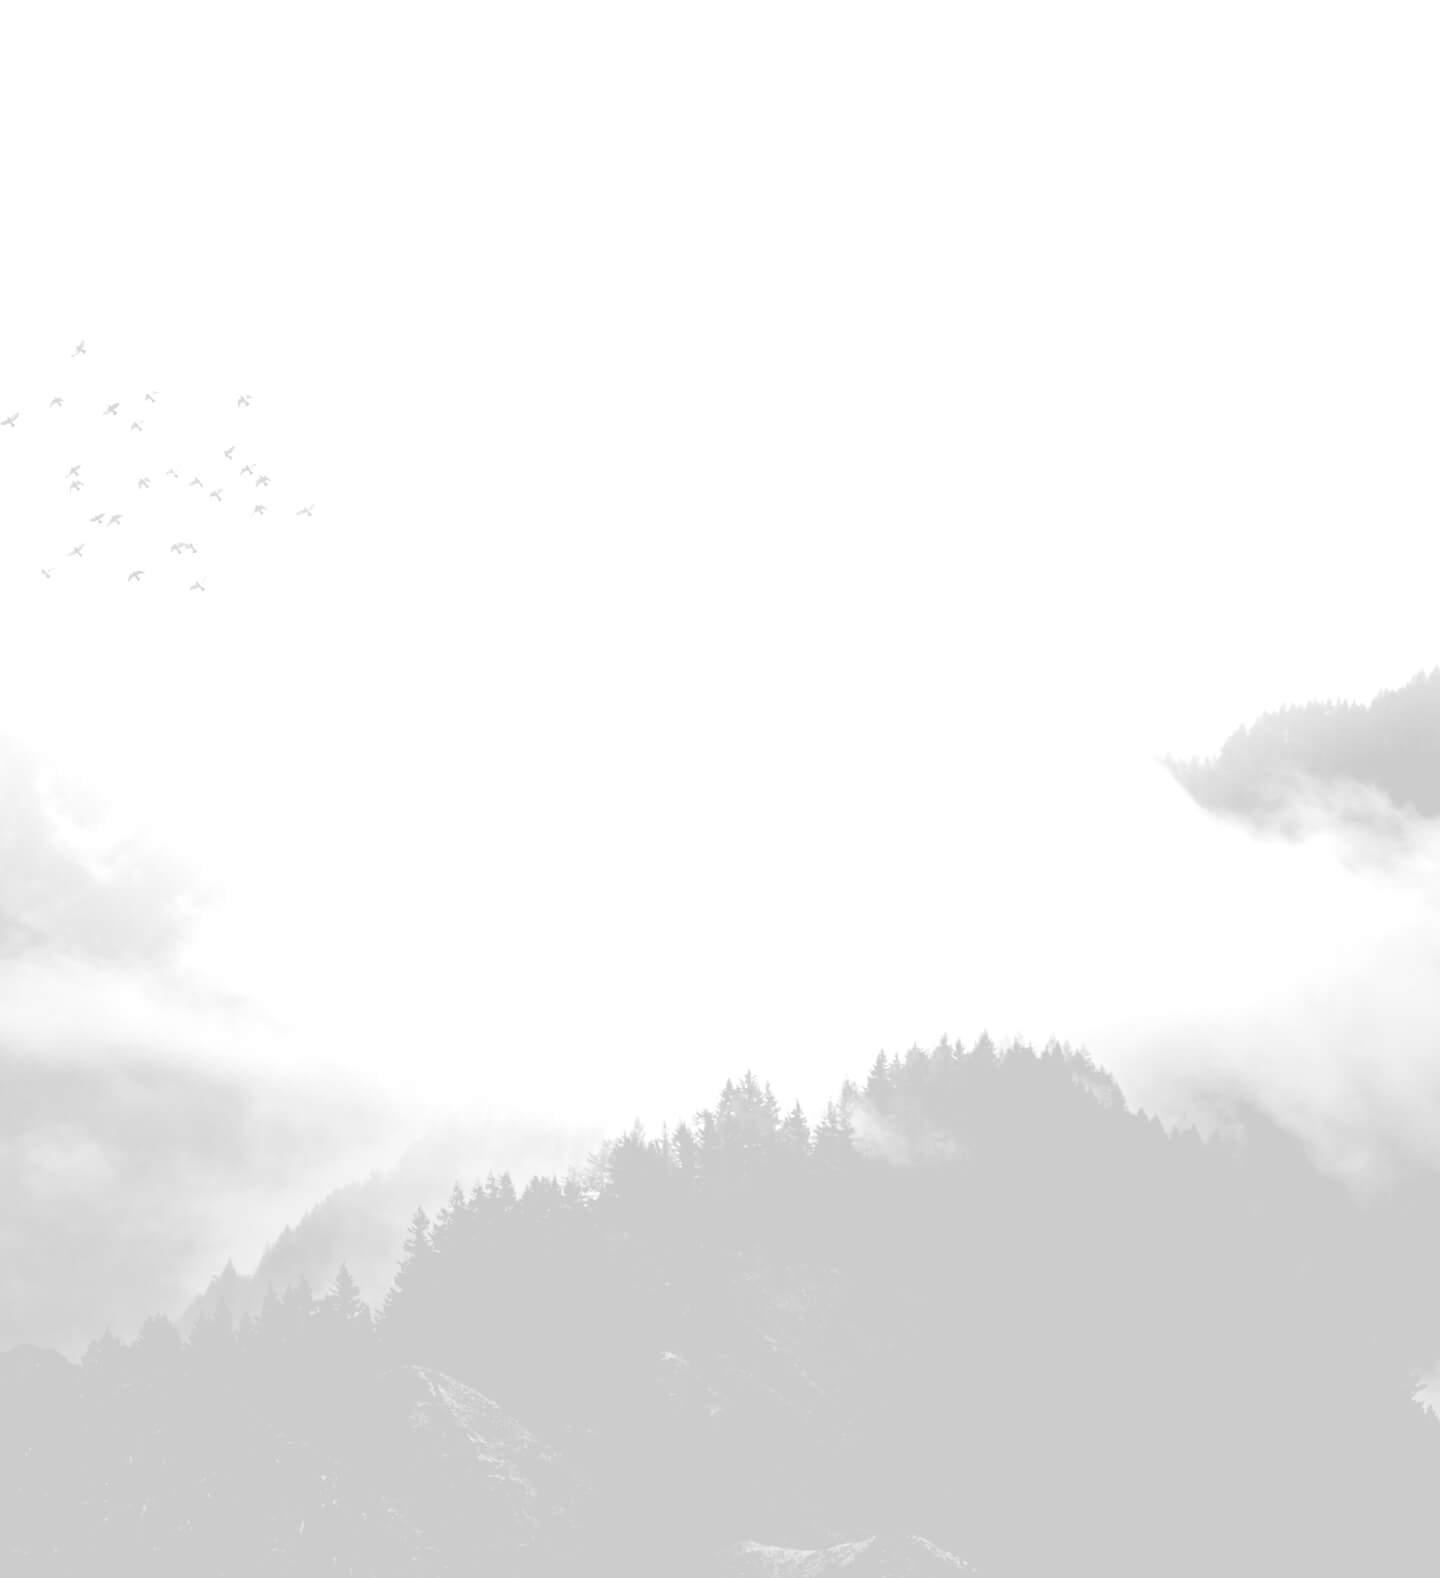 Misty mountain background image